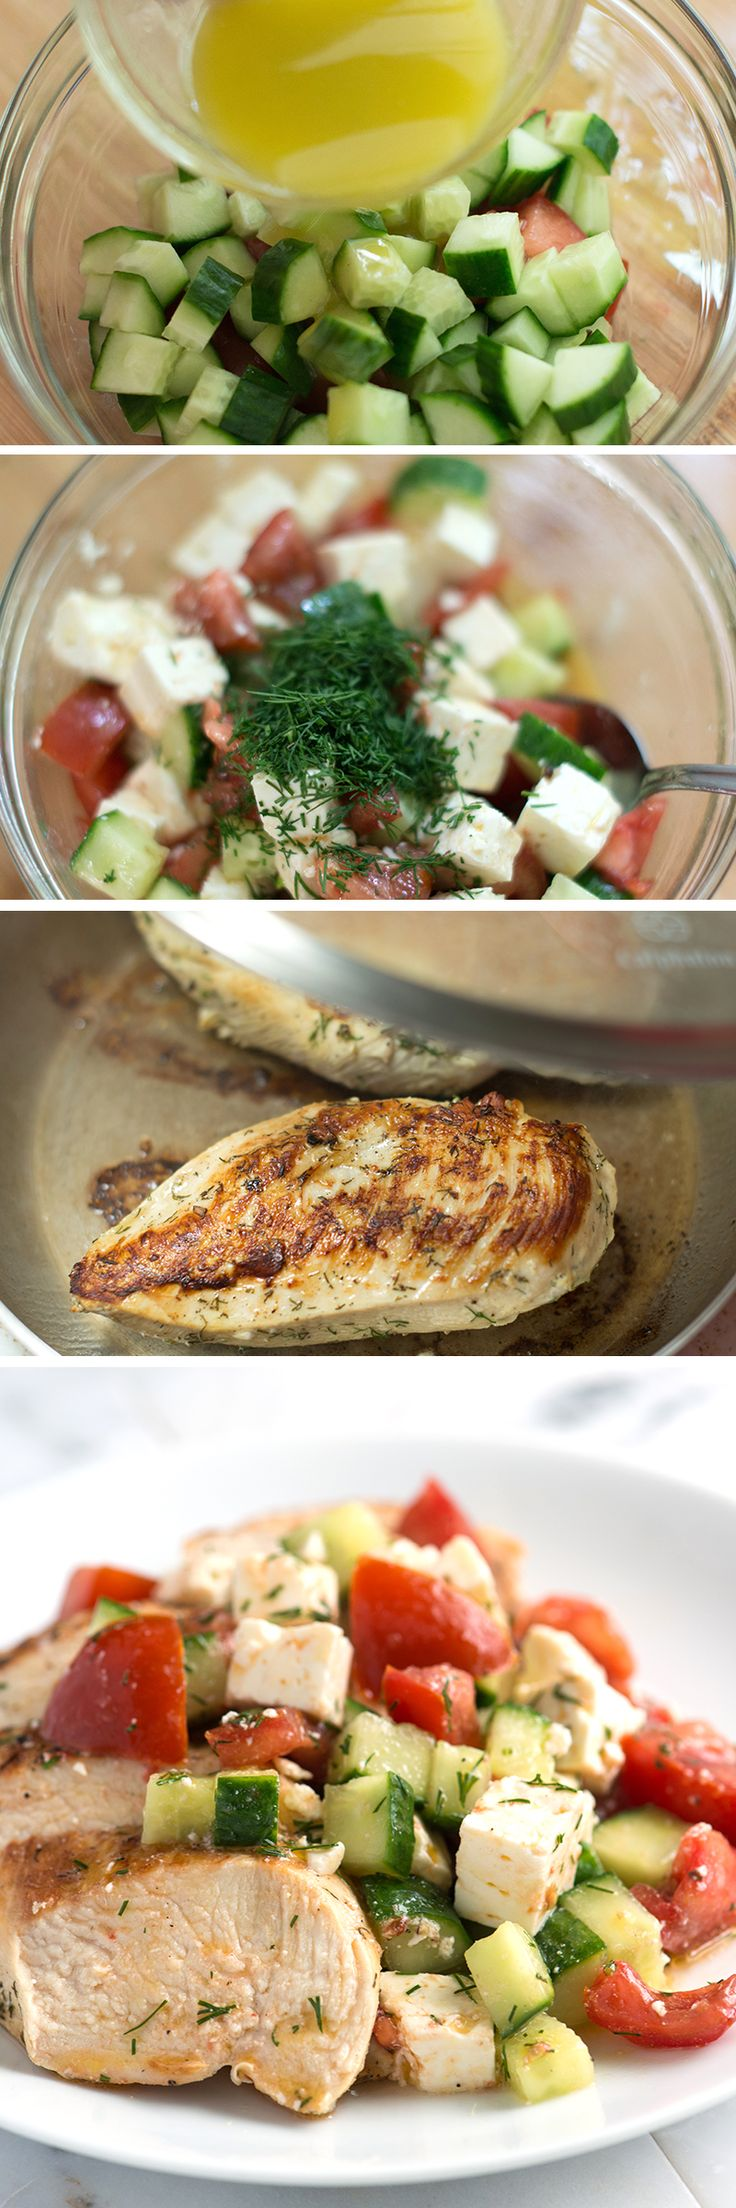 Lemony Chicken Breast Recipe with Cucumber Feta Salad - Chicken breasts are a staple in most kitchens, including ours. This simple marinated chicken breast is topped with a fresh, crisp cucumber salad  and is absolutely perfect for the weekday. From inspiredtaste.net | @inspiredtaste